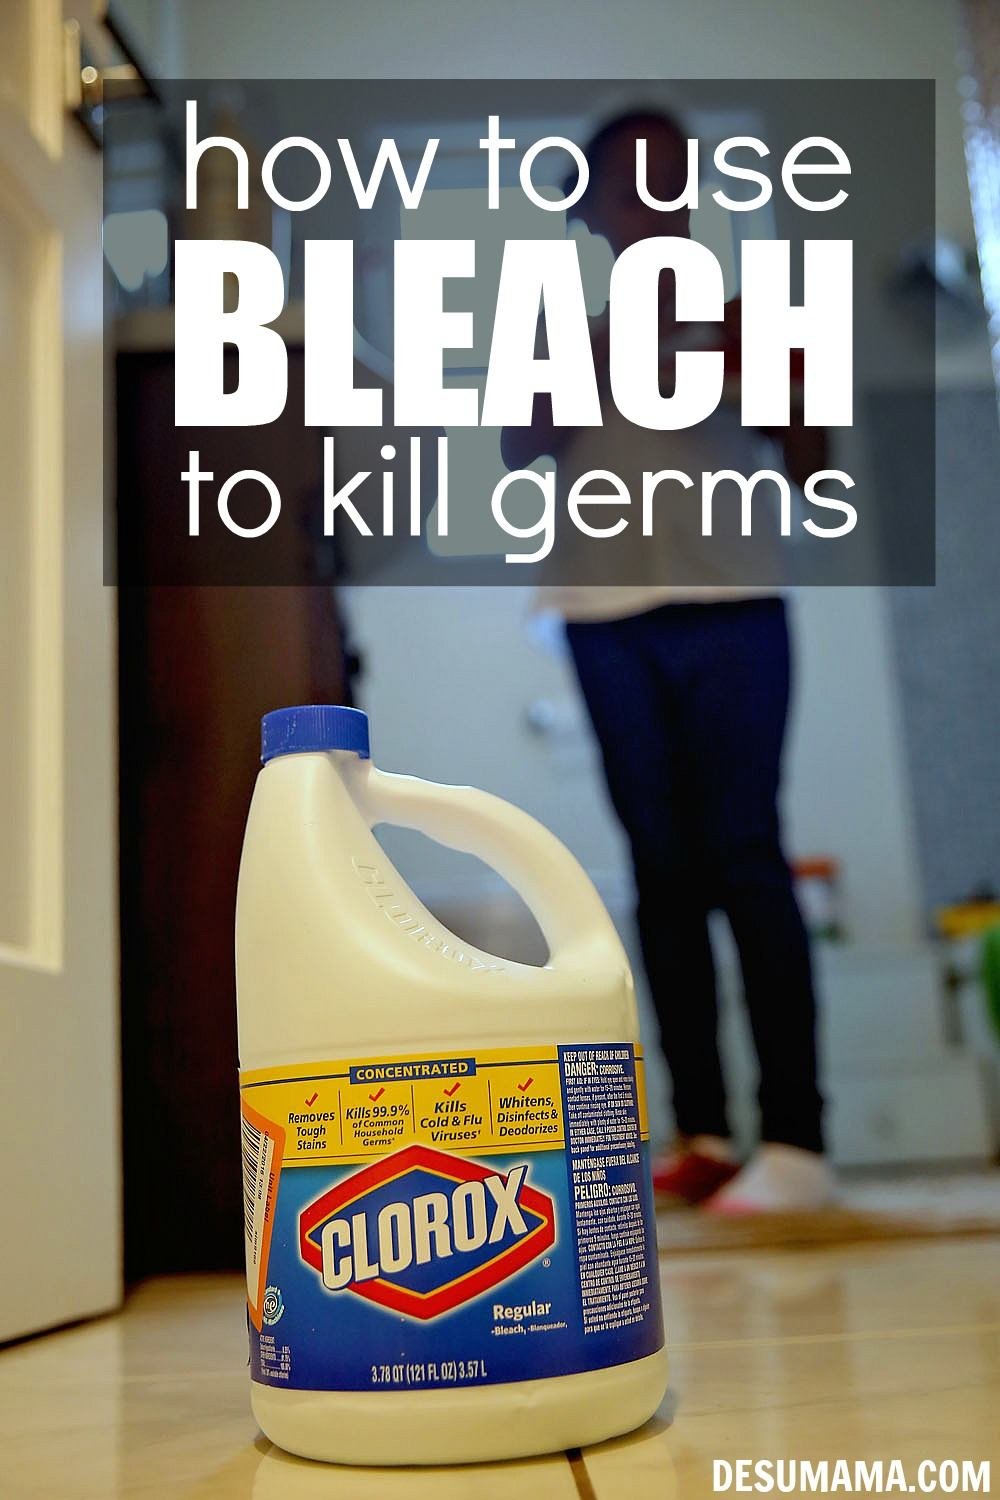 how to use bleach to kill germs